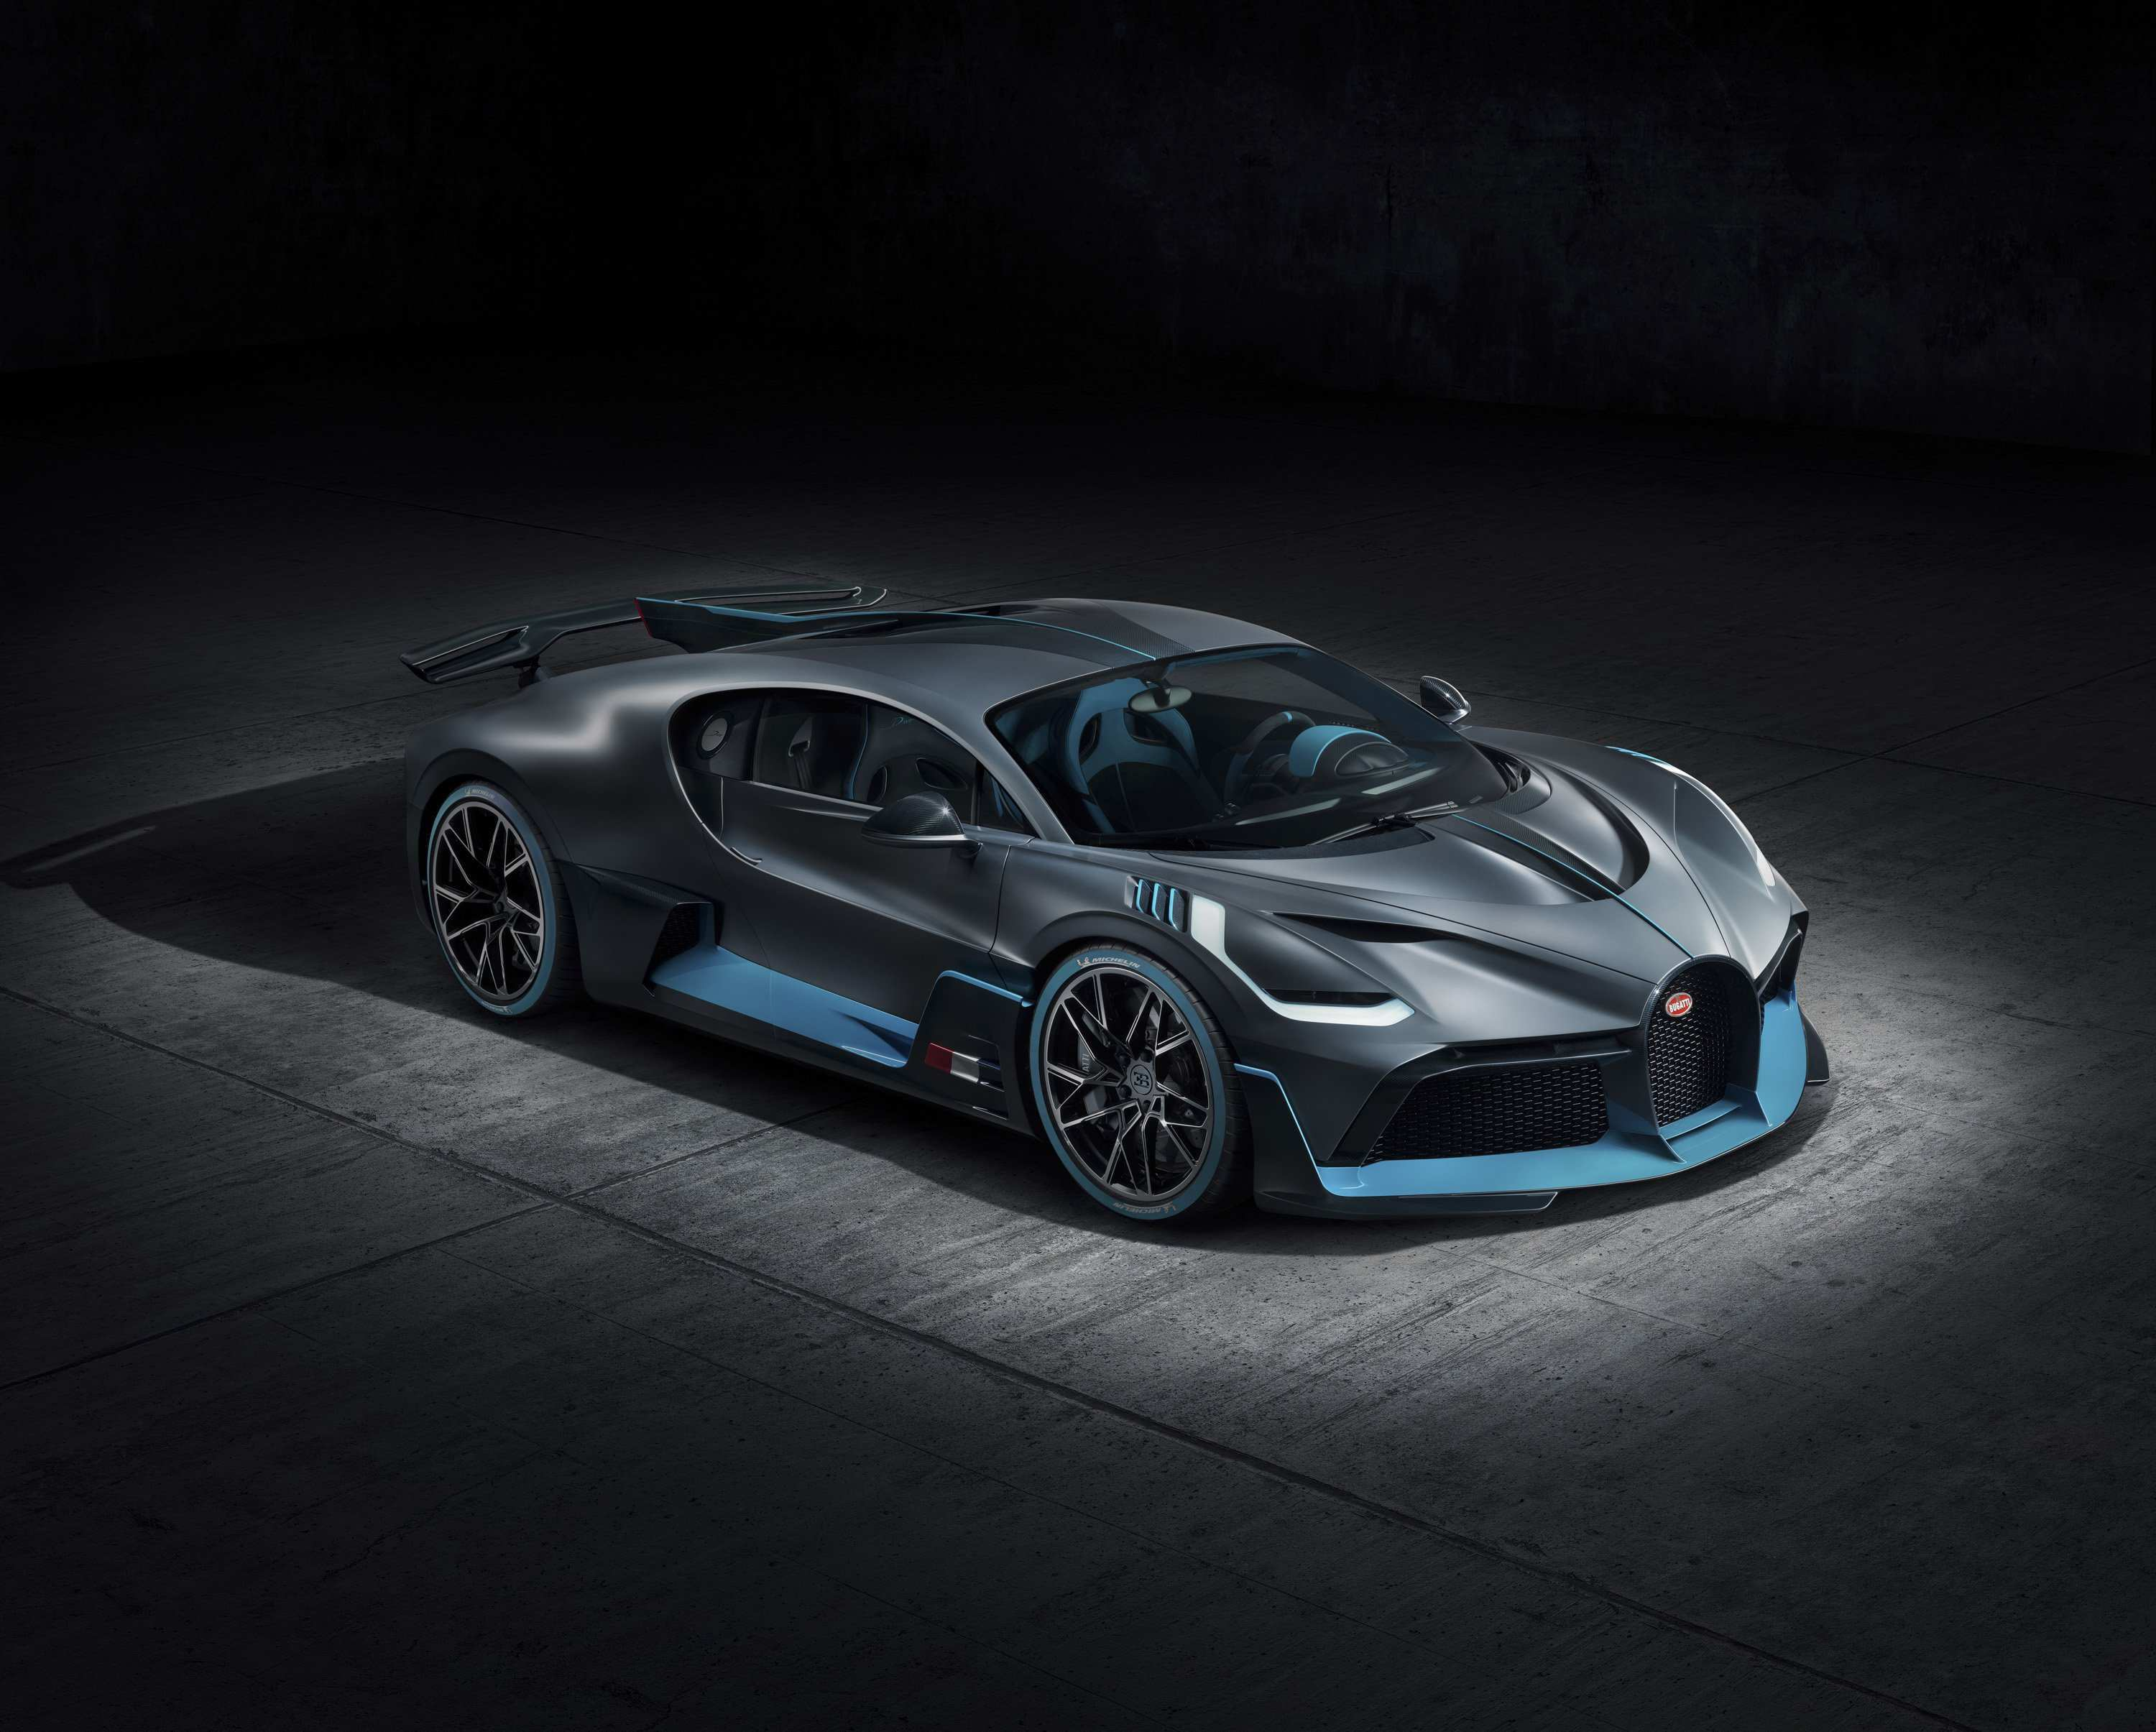 76 The 2019 Bugatti Veyron Top Speed Concept with 2019 Bugatti Veyron Top Speed